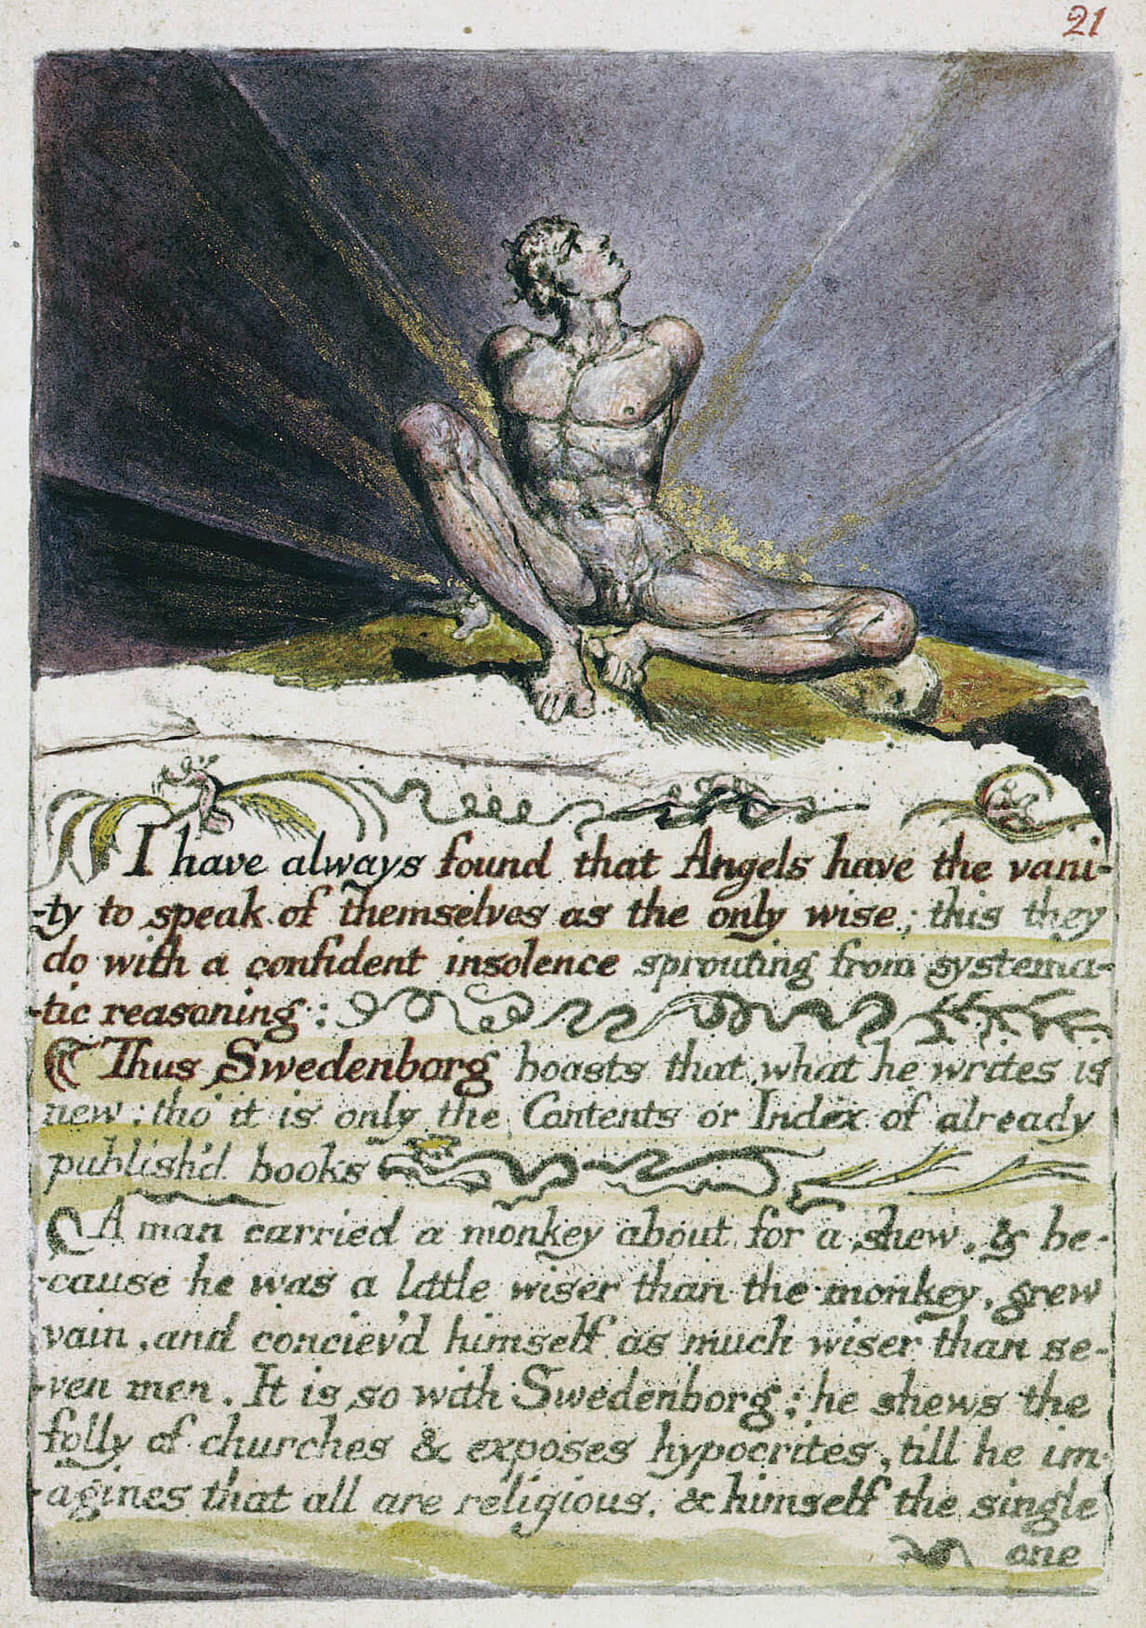 William Blake, The Marriage of Heaven and Hell (1790)